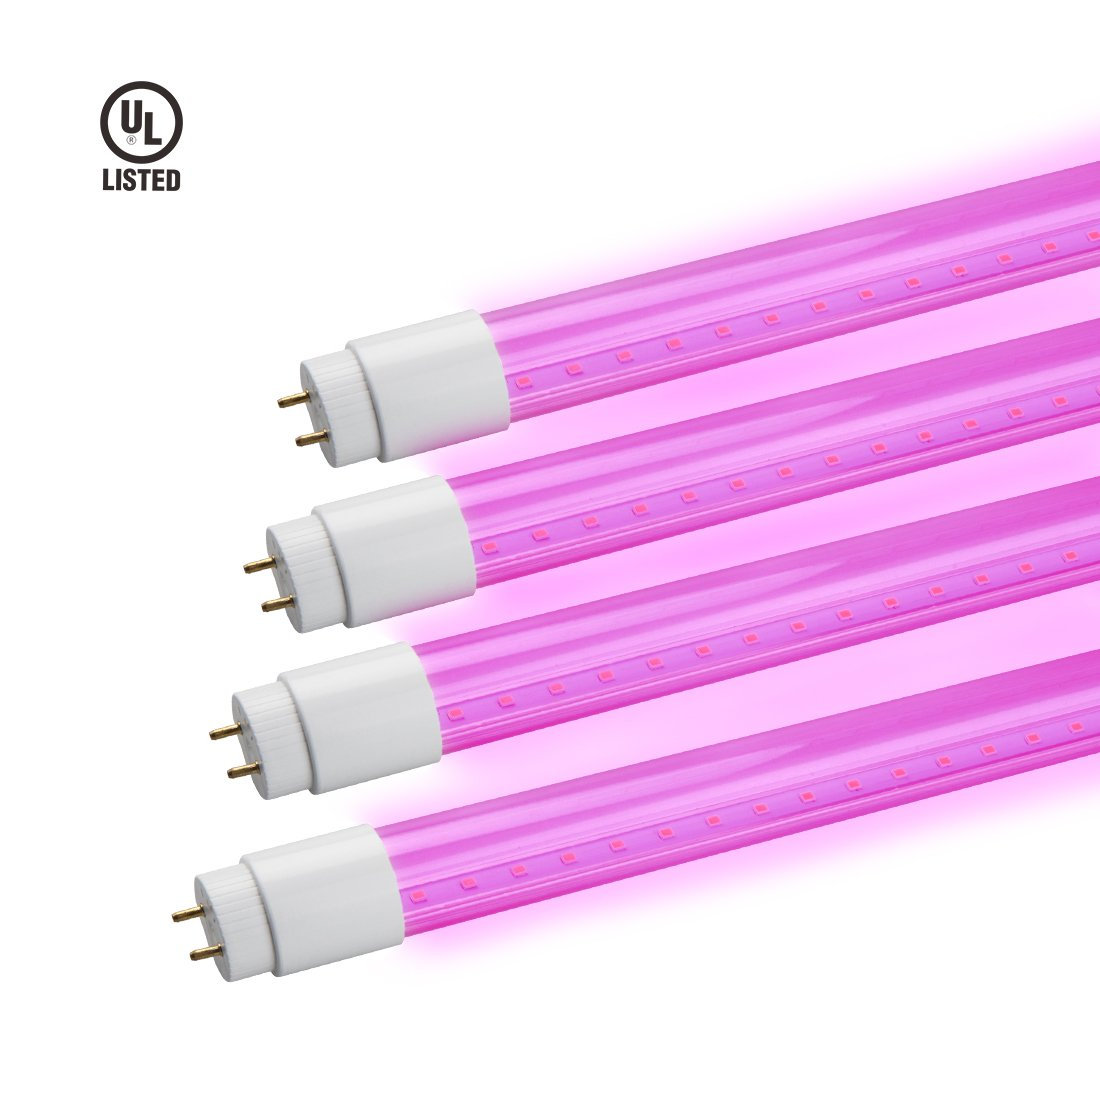 GrowLED Thinklux LED T8 - LED Grow Light Tube for Garden, Hydroponic, and Greenhouse - 18 Watts - Red/Blue Spectrum, Bypass Ballast, Direct Wire, UL Listed? Pack of 4